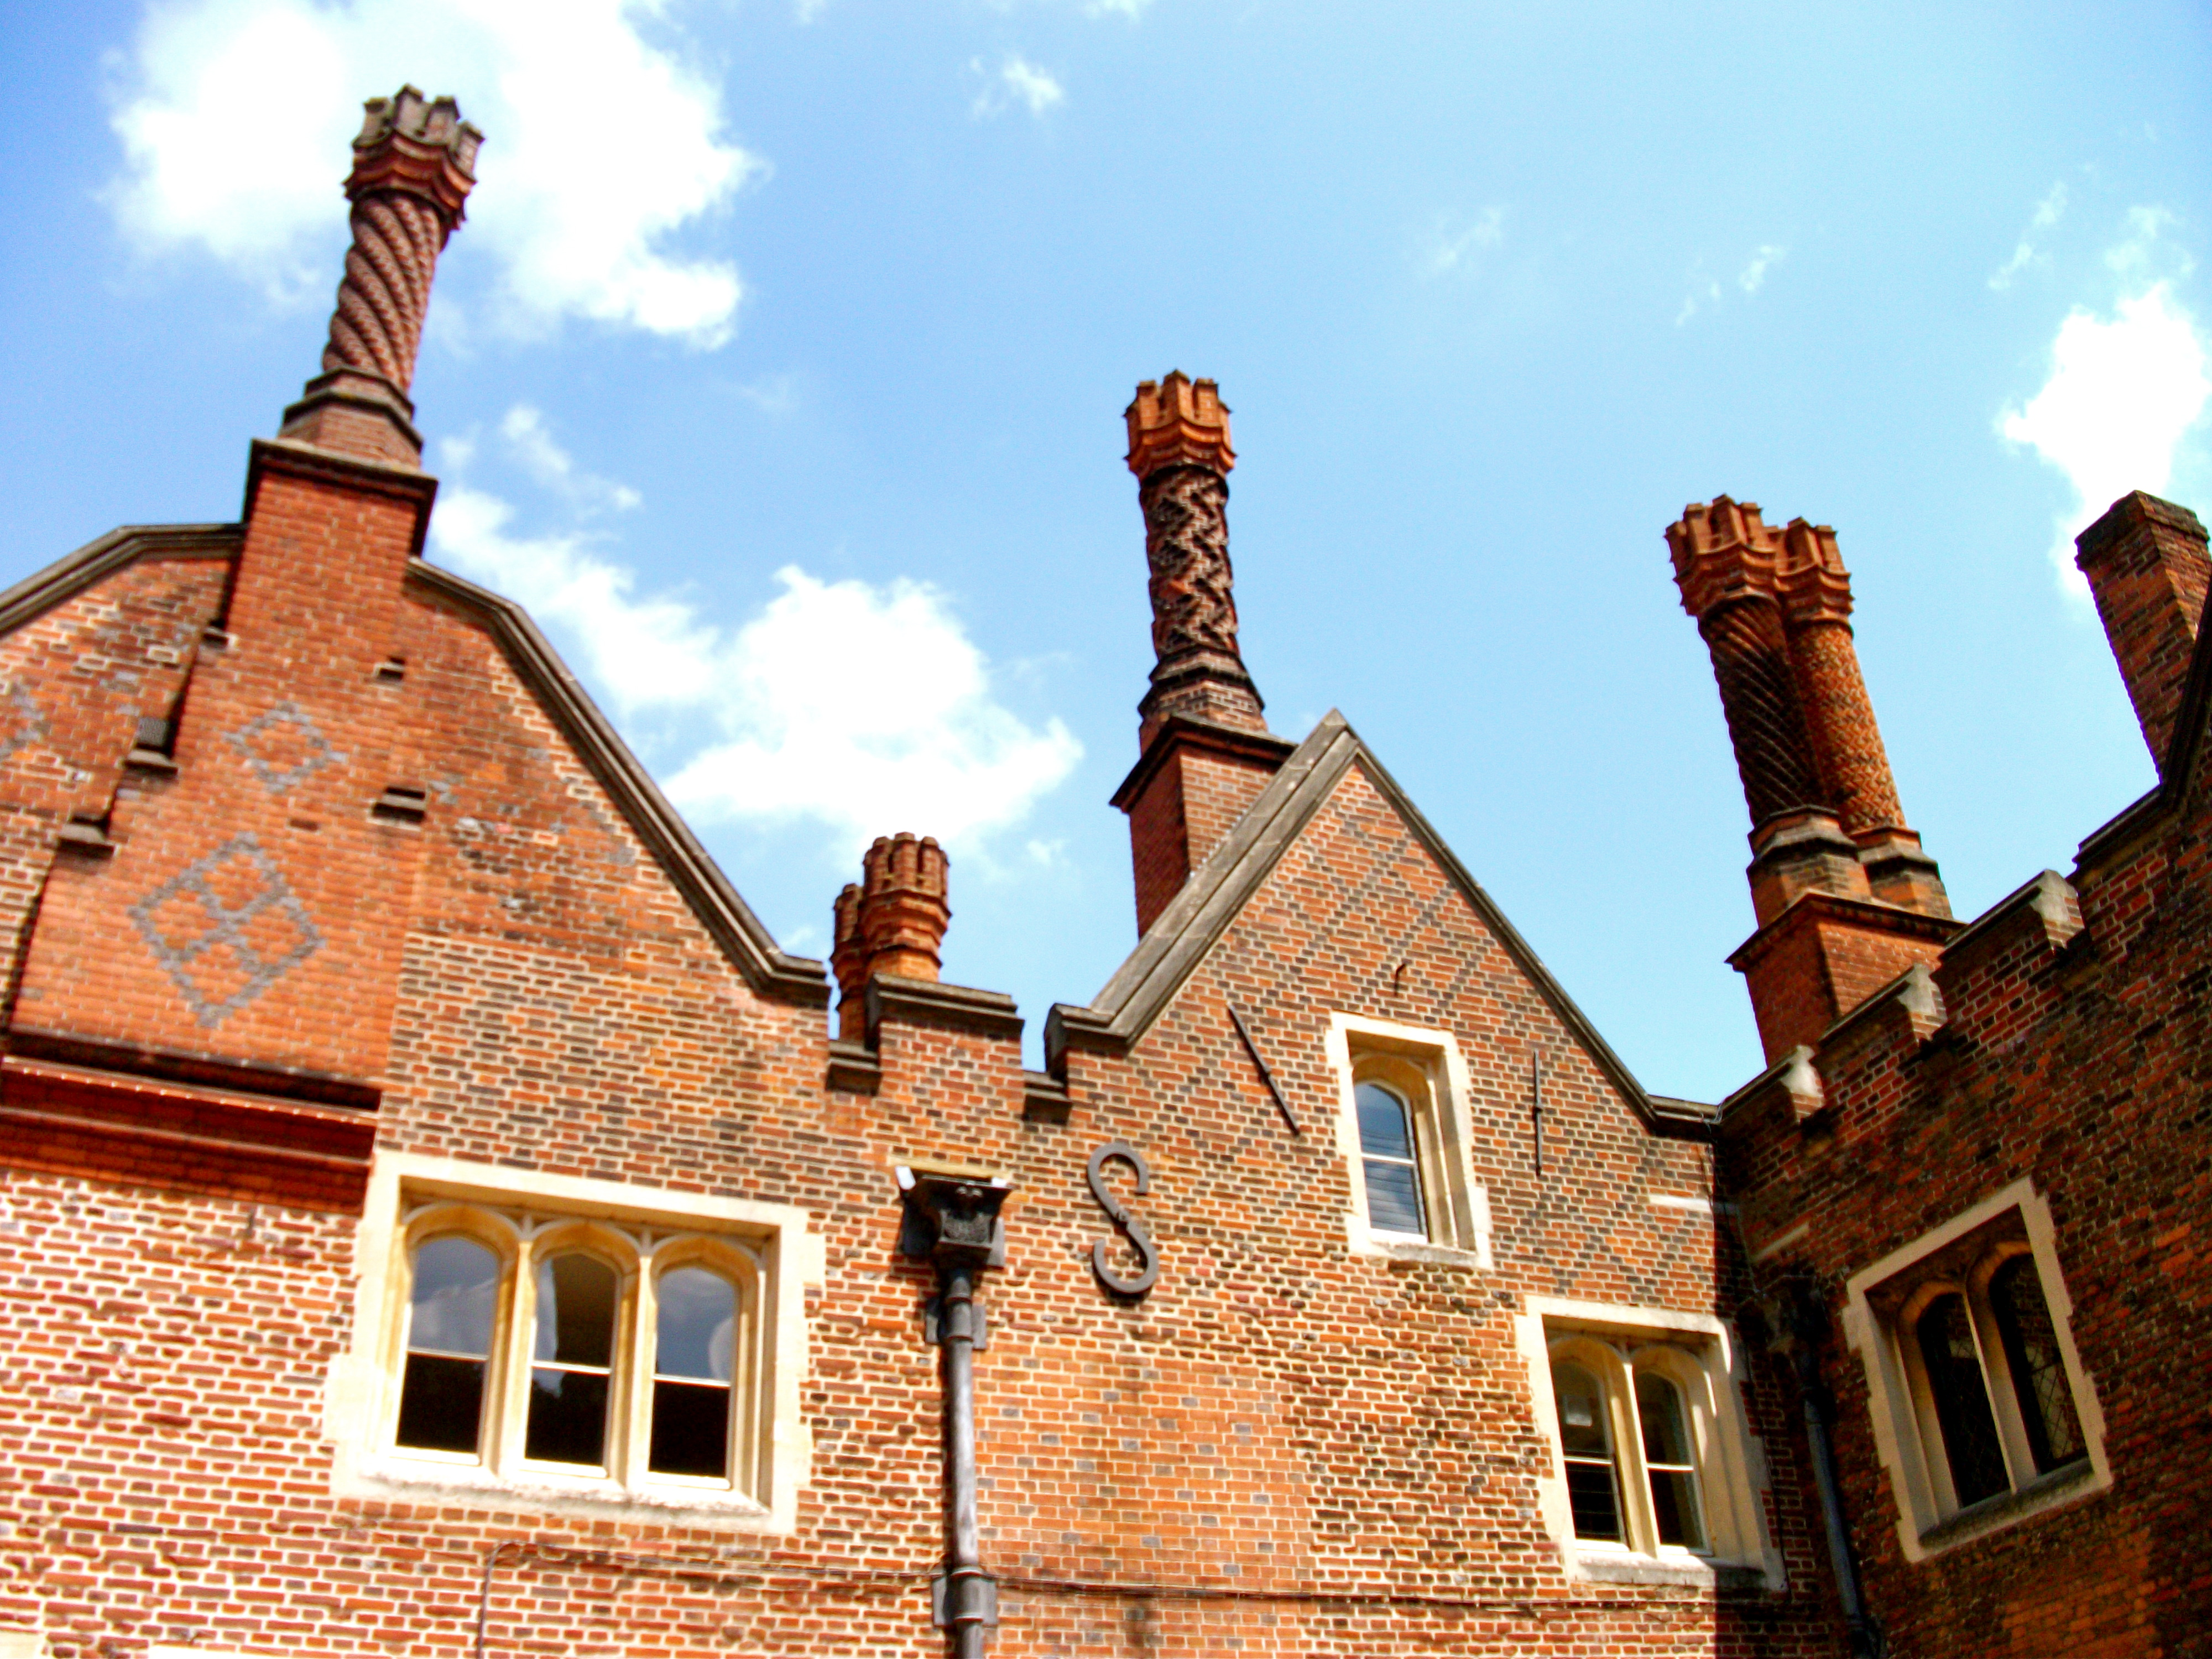 Chimneys-Hampton-Court-Palace-London-England